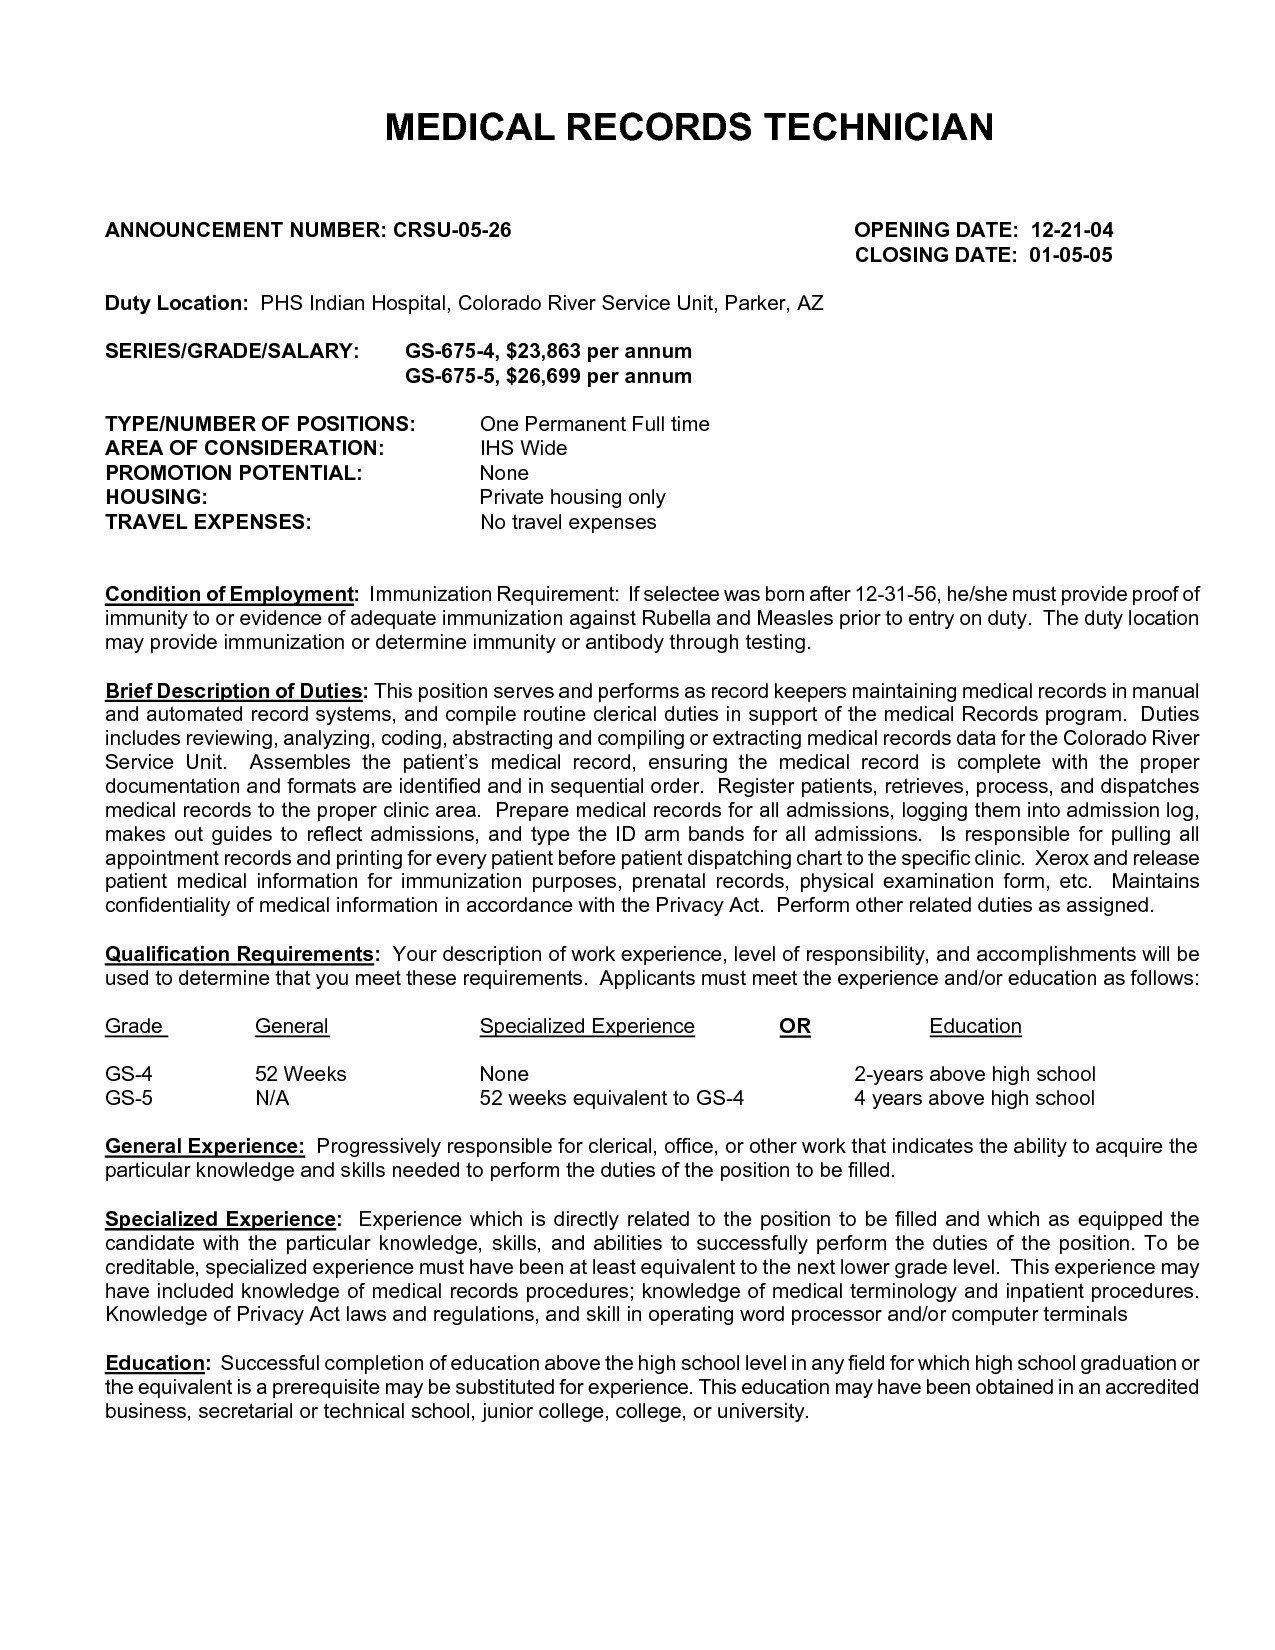 67 Elegant Photos Of Resume Examples For Medical Records Clerk